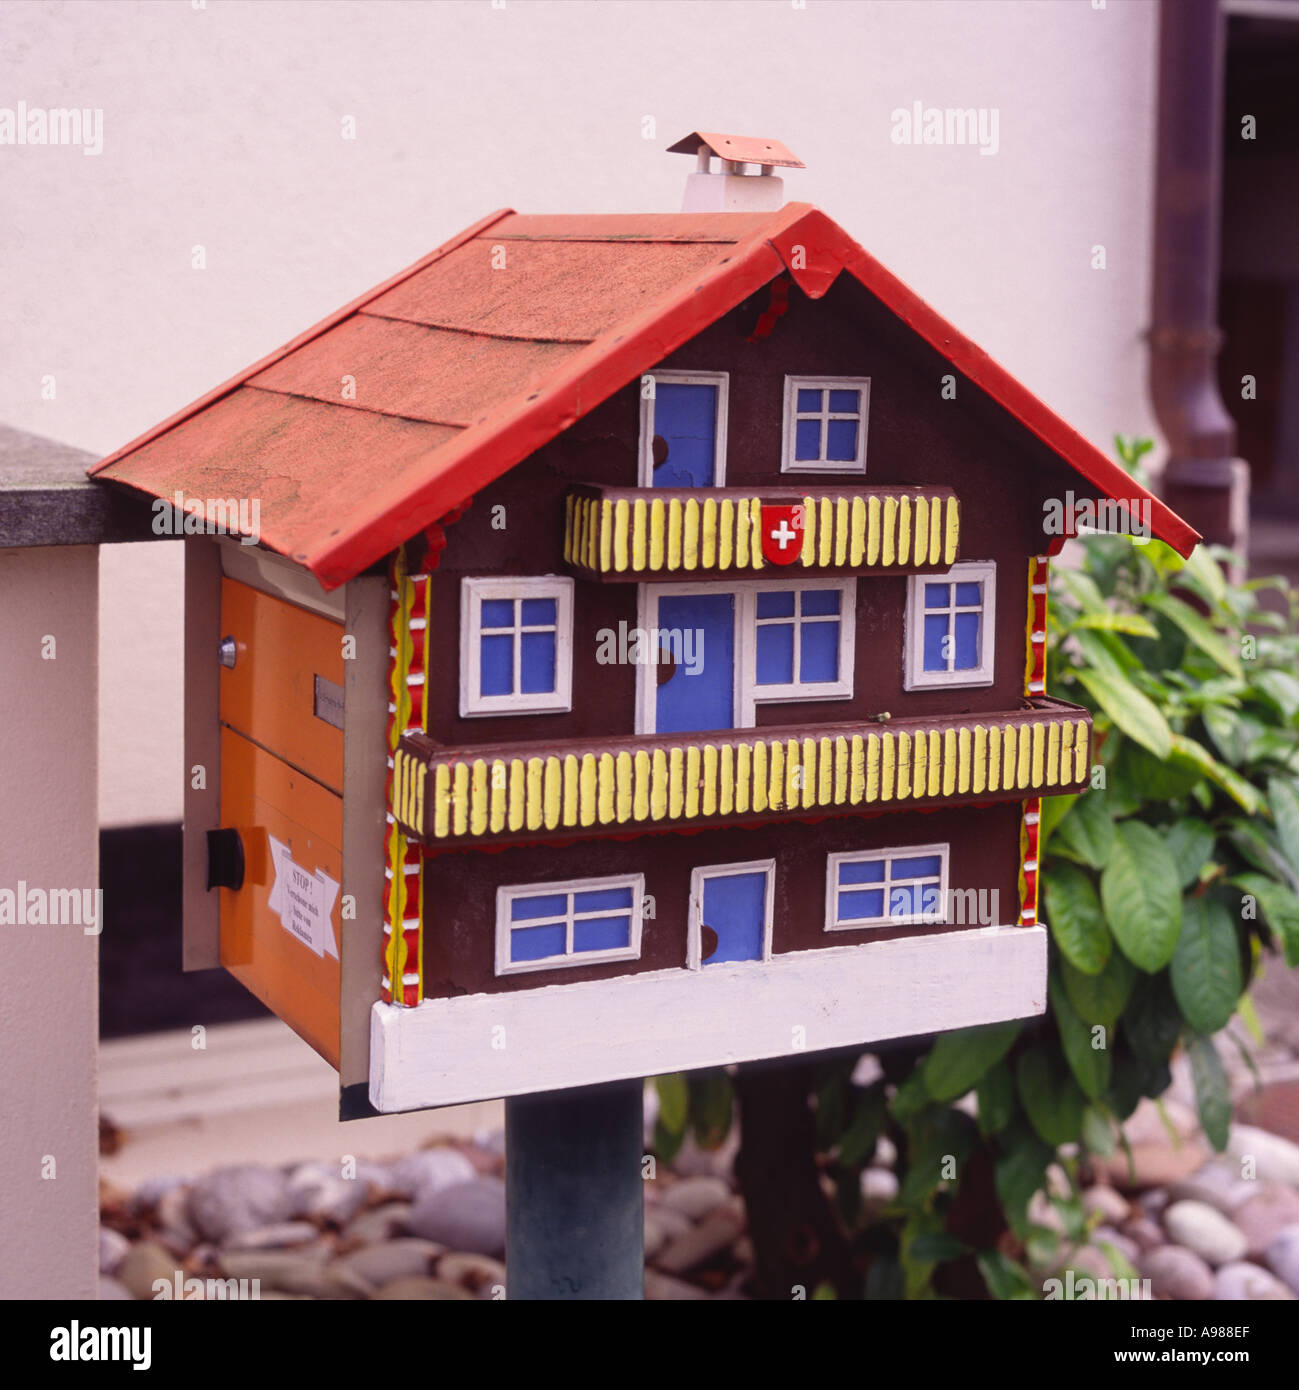 home mailbox in the form of a little traditional miniature swiss home mailbox in the form of a little traditional miniature swiss chalet in oberdorf basel canton switzerland